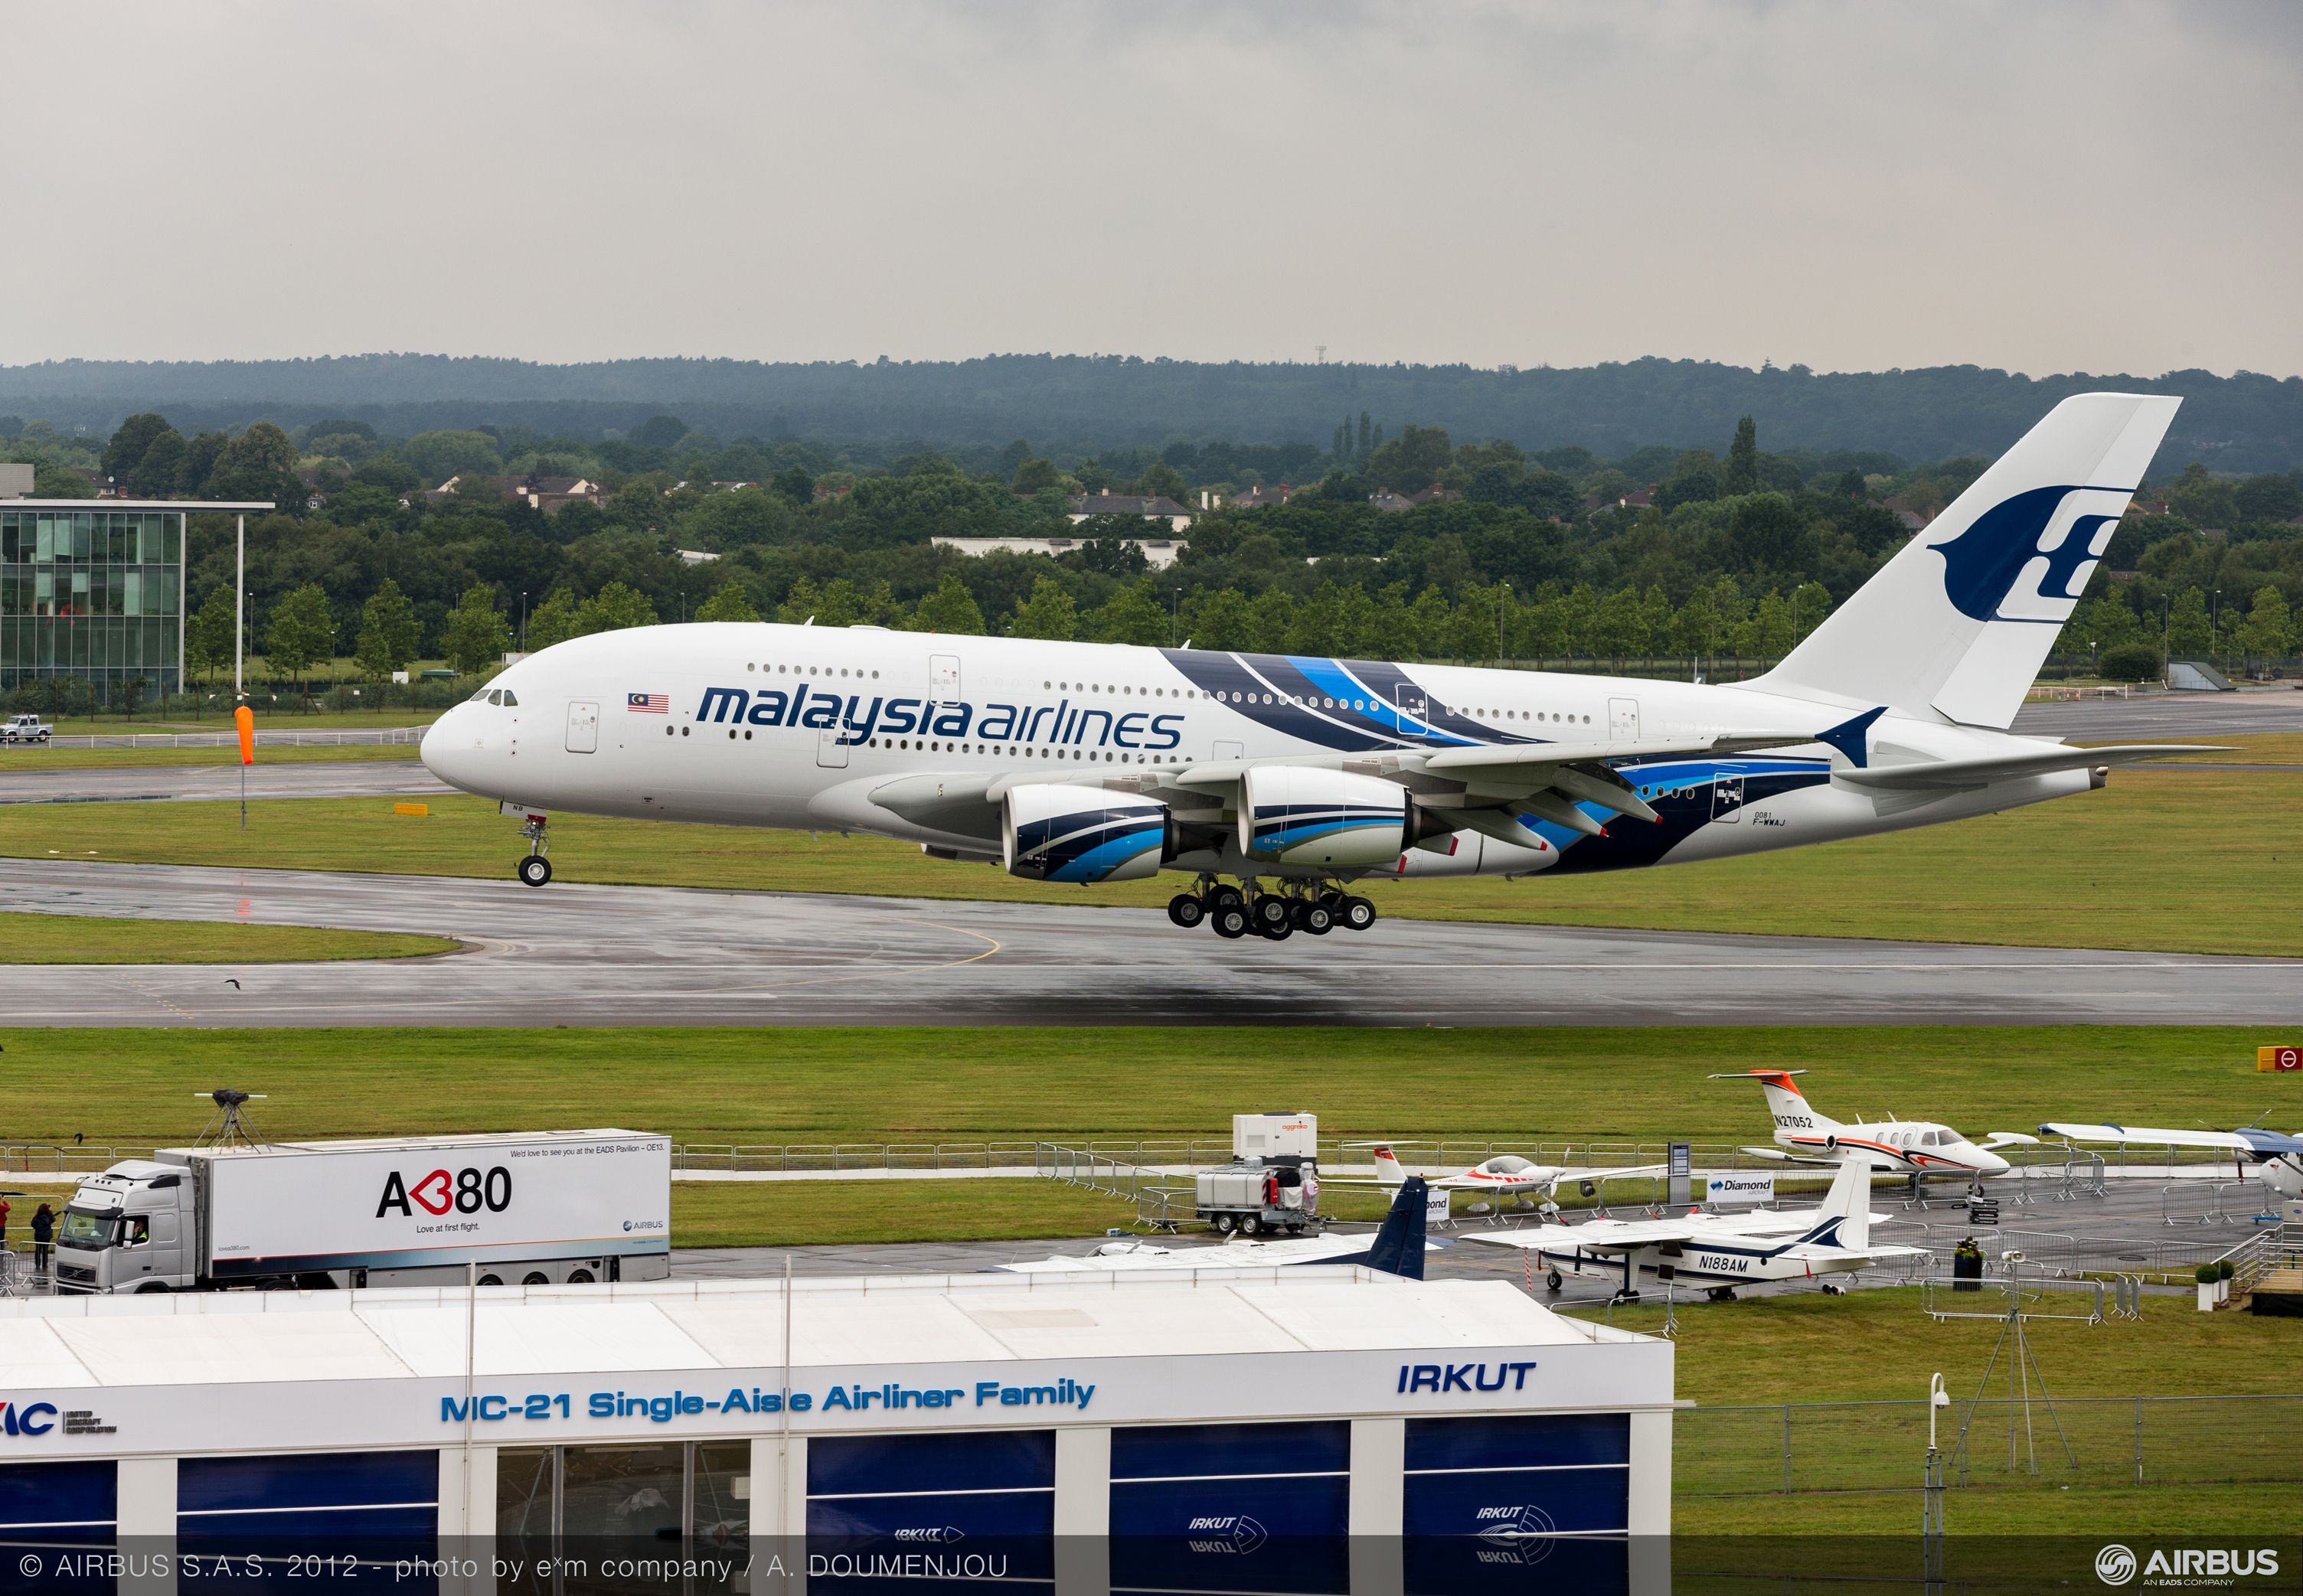 Malaysia airlines' no. 2 A380 makes a starring appearance at the  farnborough airshow - Commercial Aircraft - Airbus